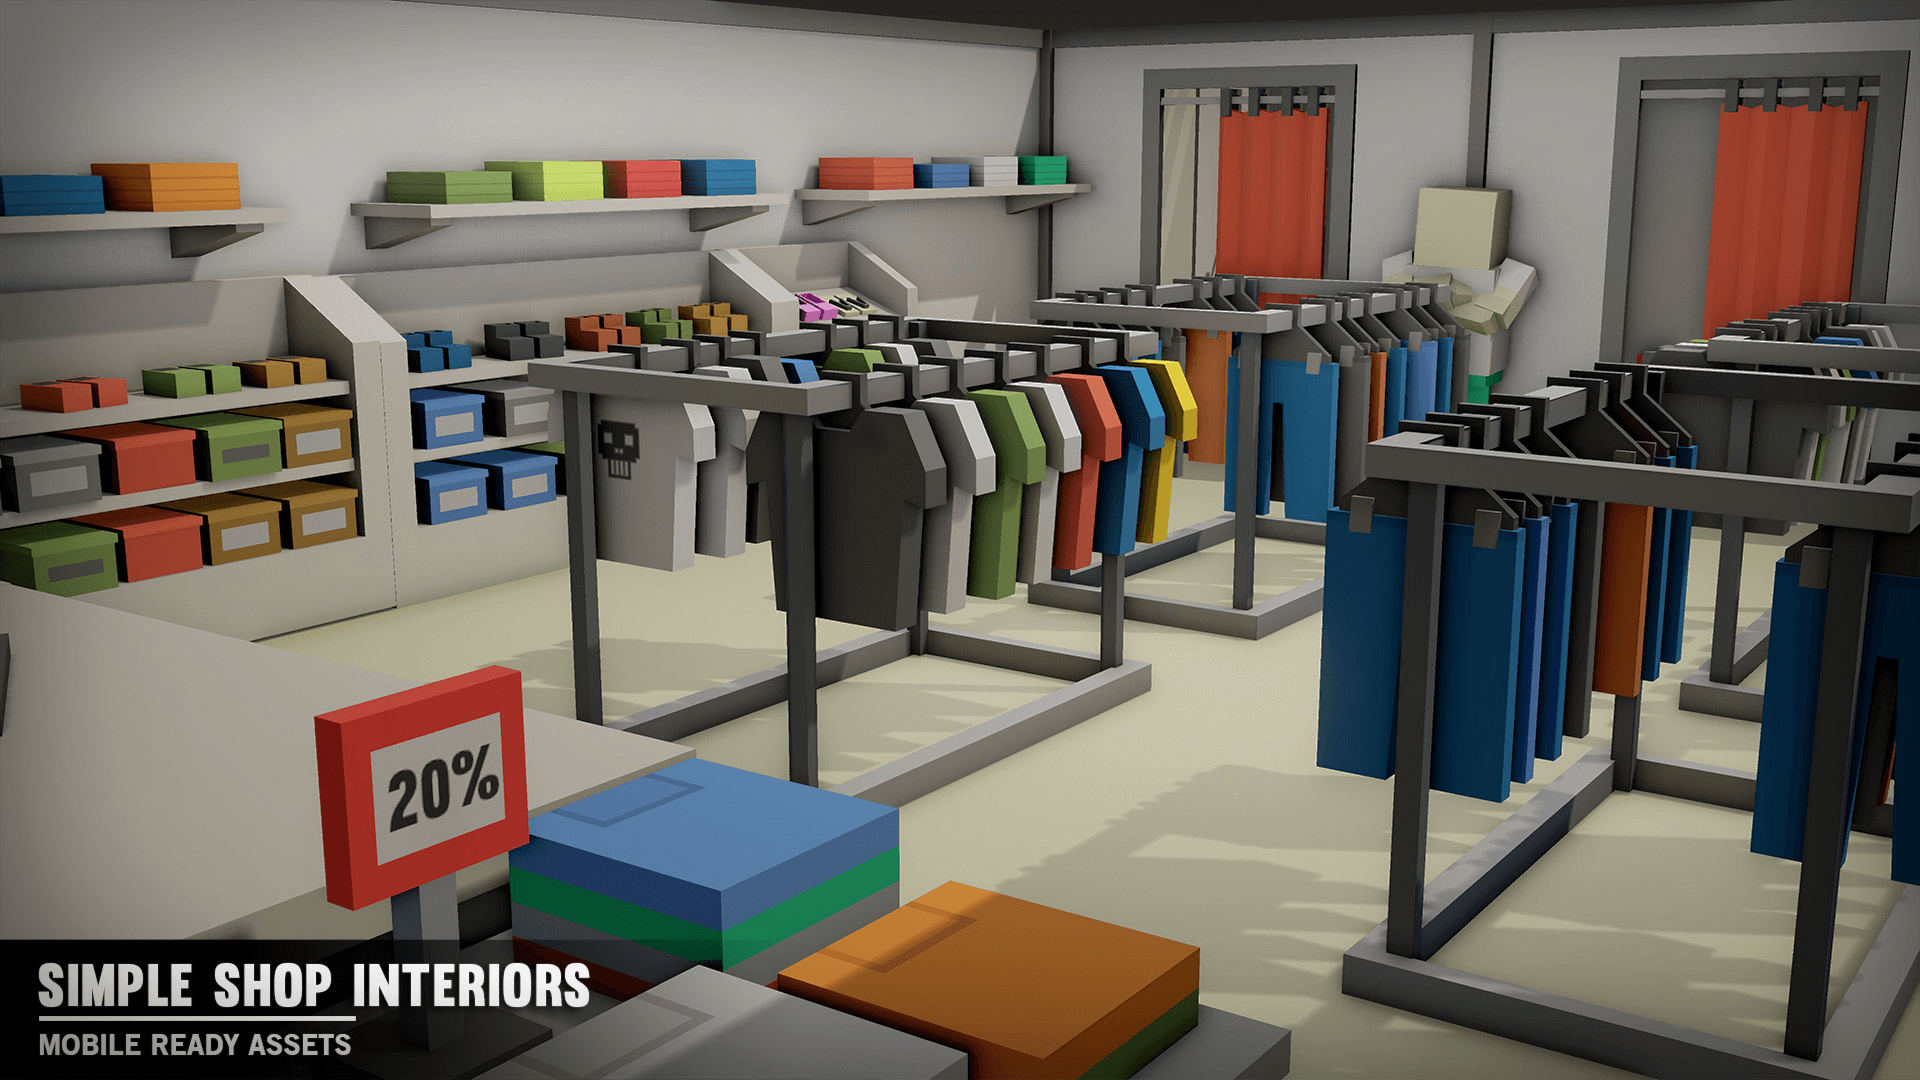 Simple Shop Interiors By Synty Studios In Environments Ue4 Marketplace